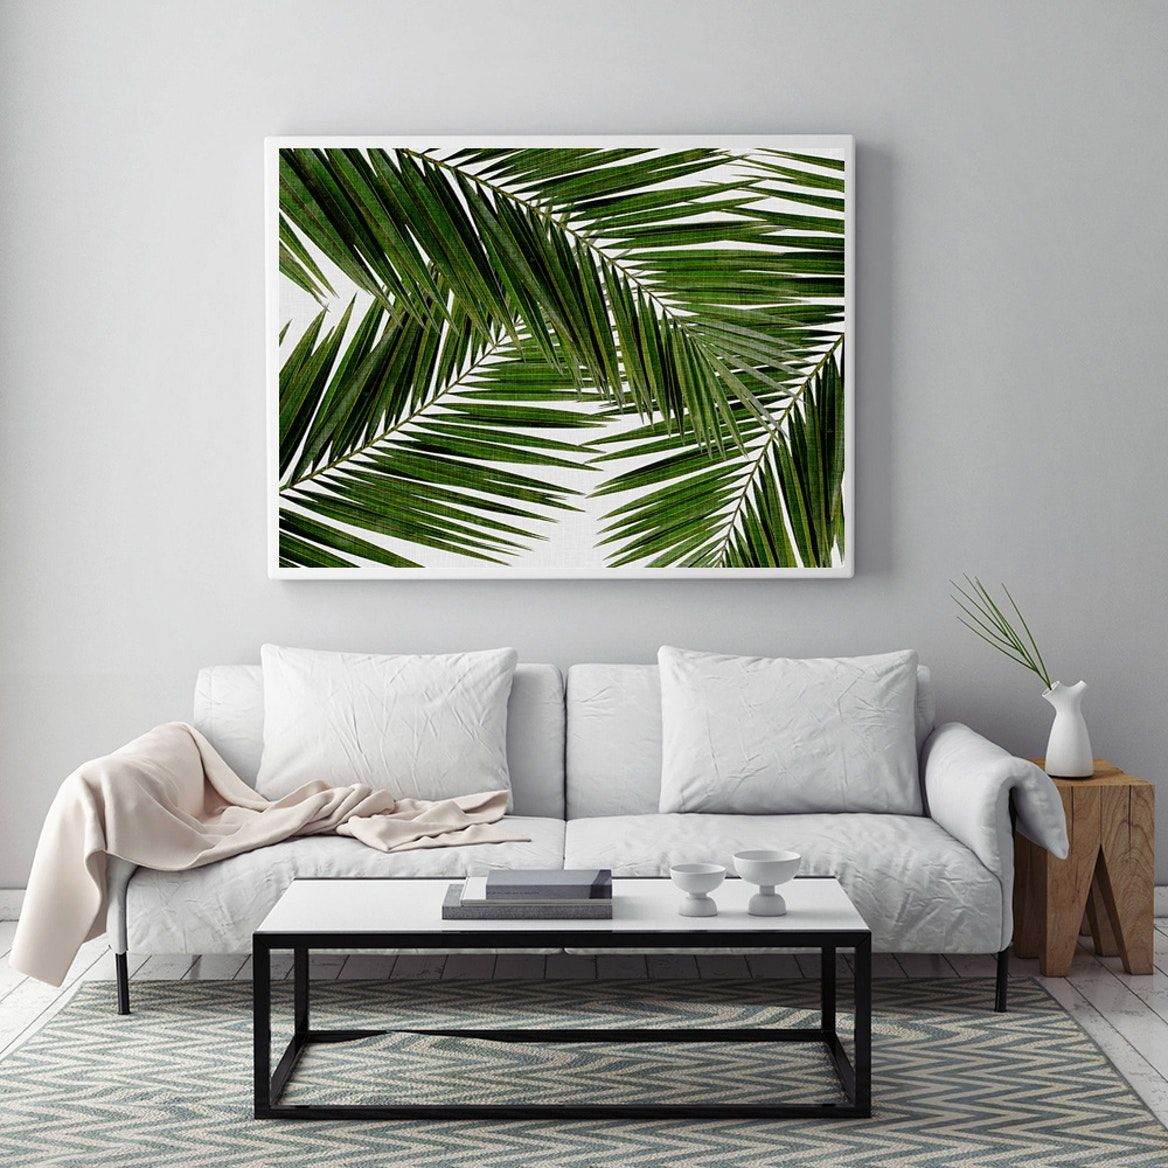 10+ Amazing Palm Tree Living Room Decor